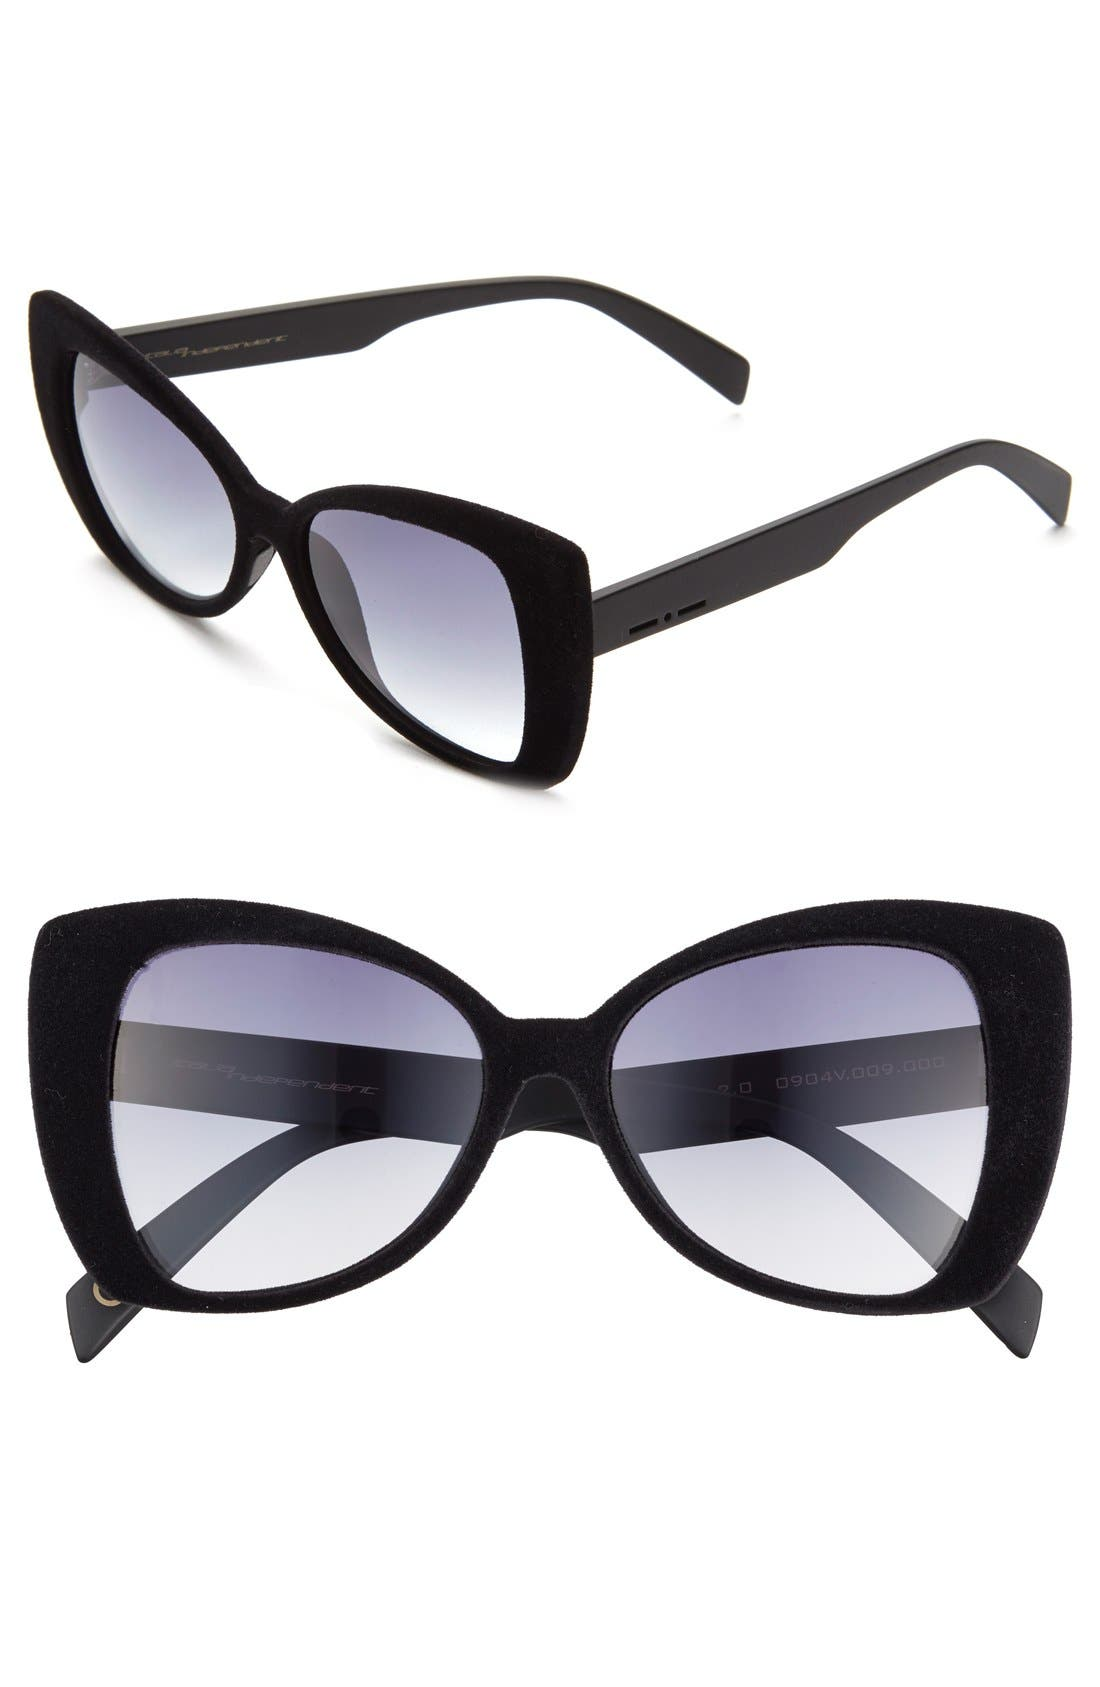 ITALIA INDEPENDENT 'I-V' 65mm Oversize Butterfly Sunglasses, Main, color, 001